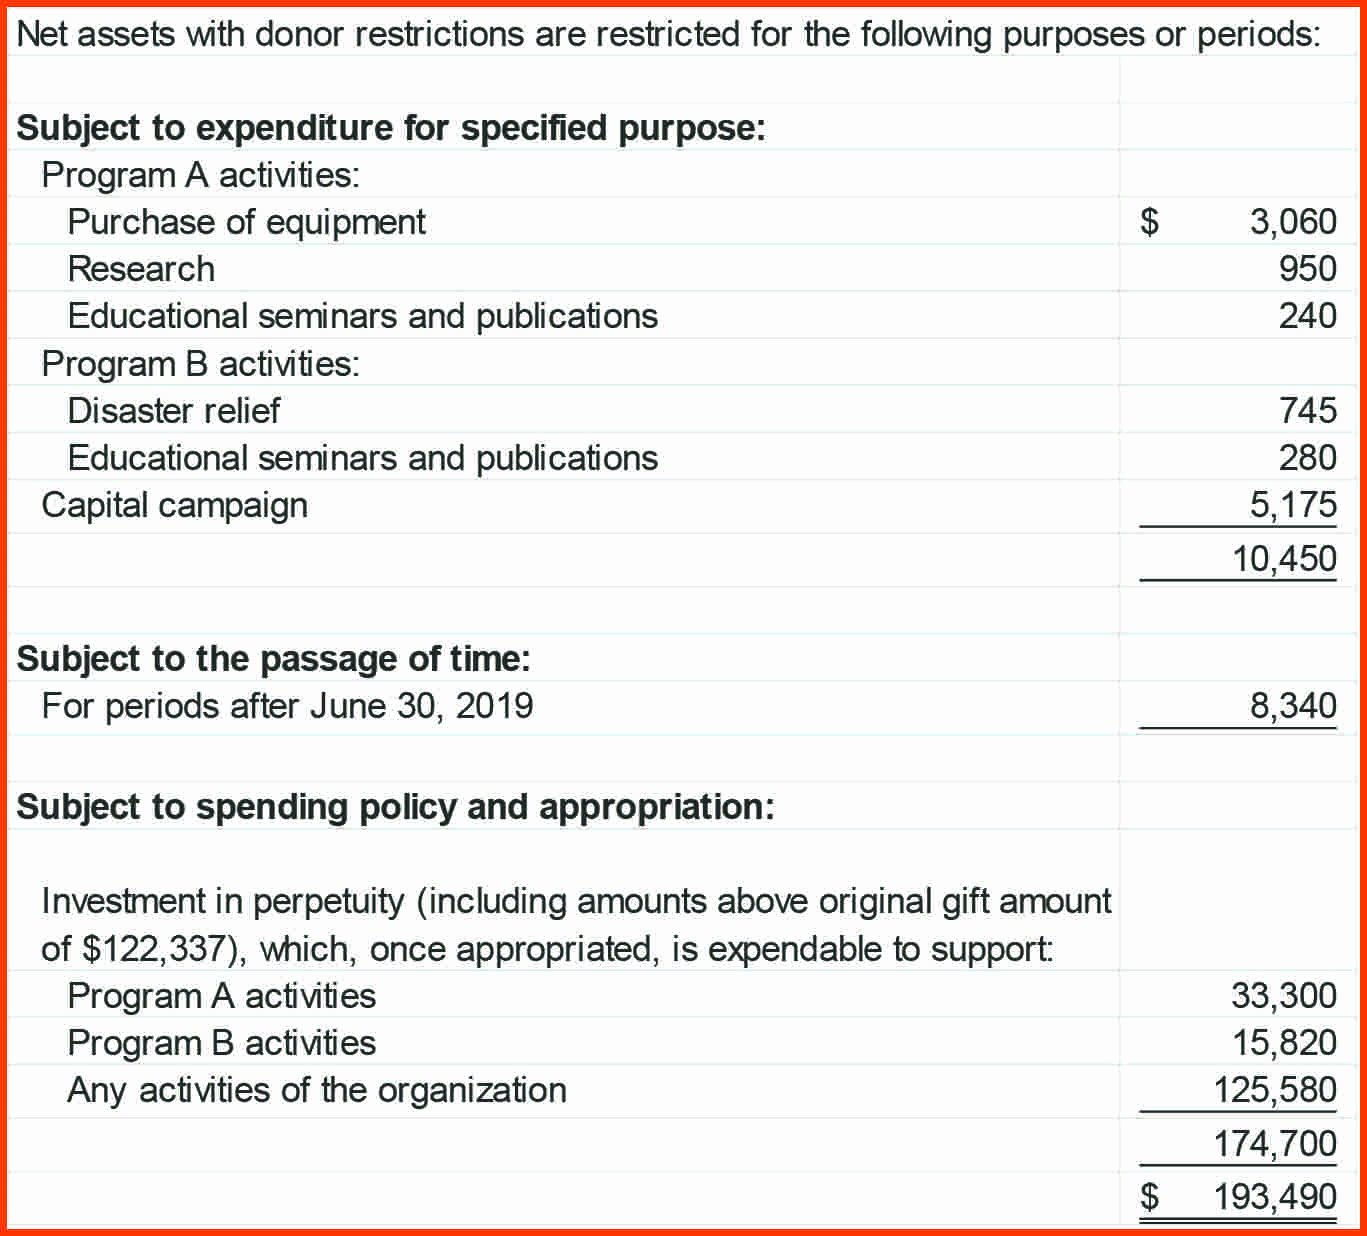 Financial Statement Effects Template Fresh Analyzing Transactions Using theal Statements Effects